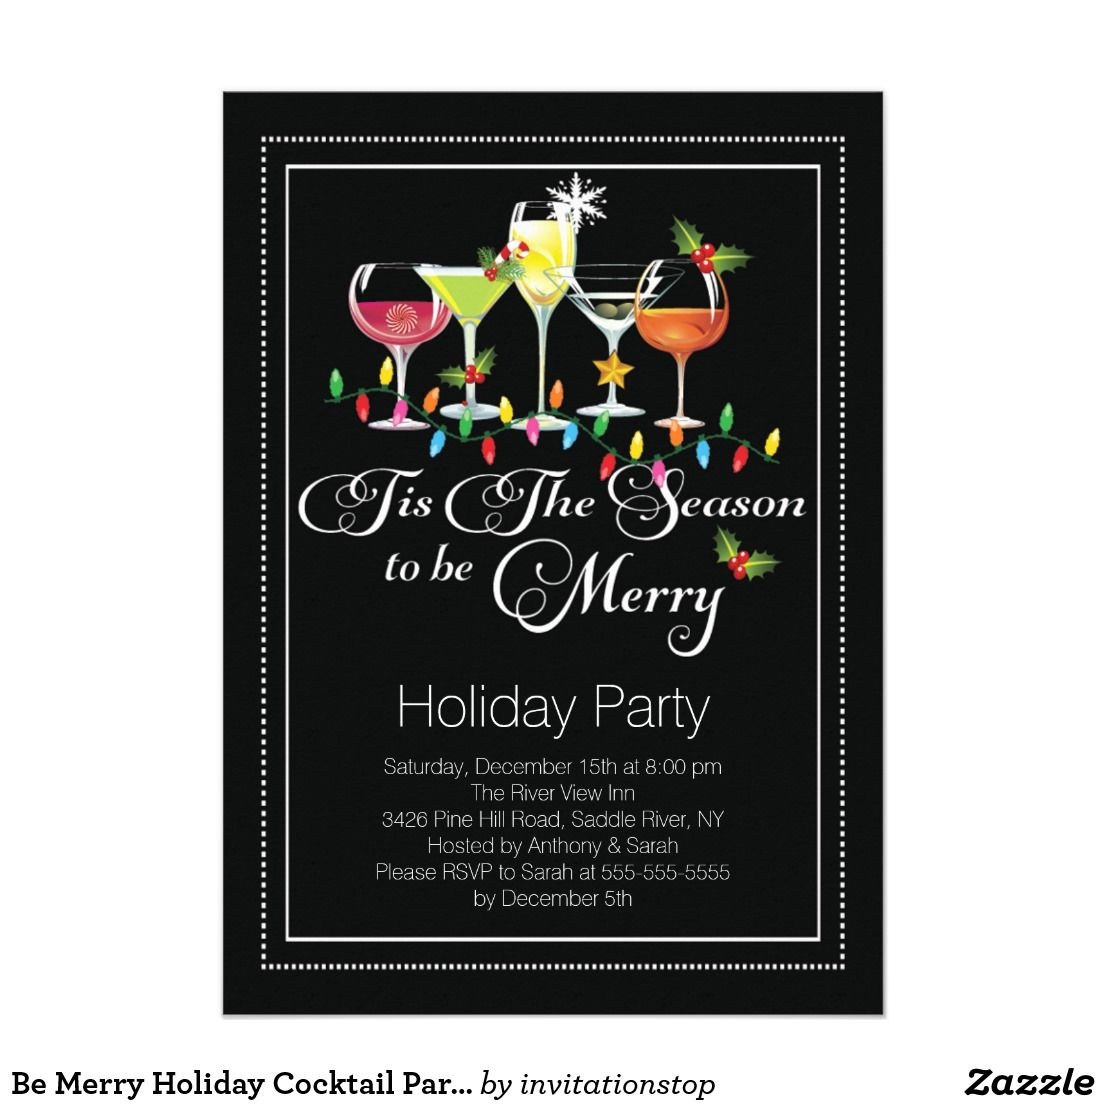 Be Merry Holiday Cocktail Party Invitation Holidays Pinterest